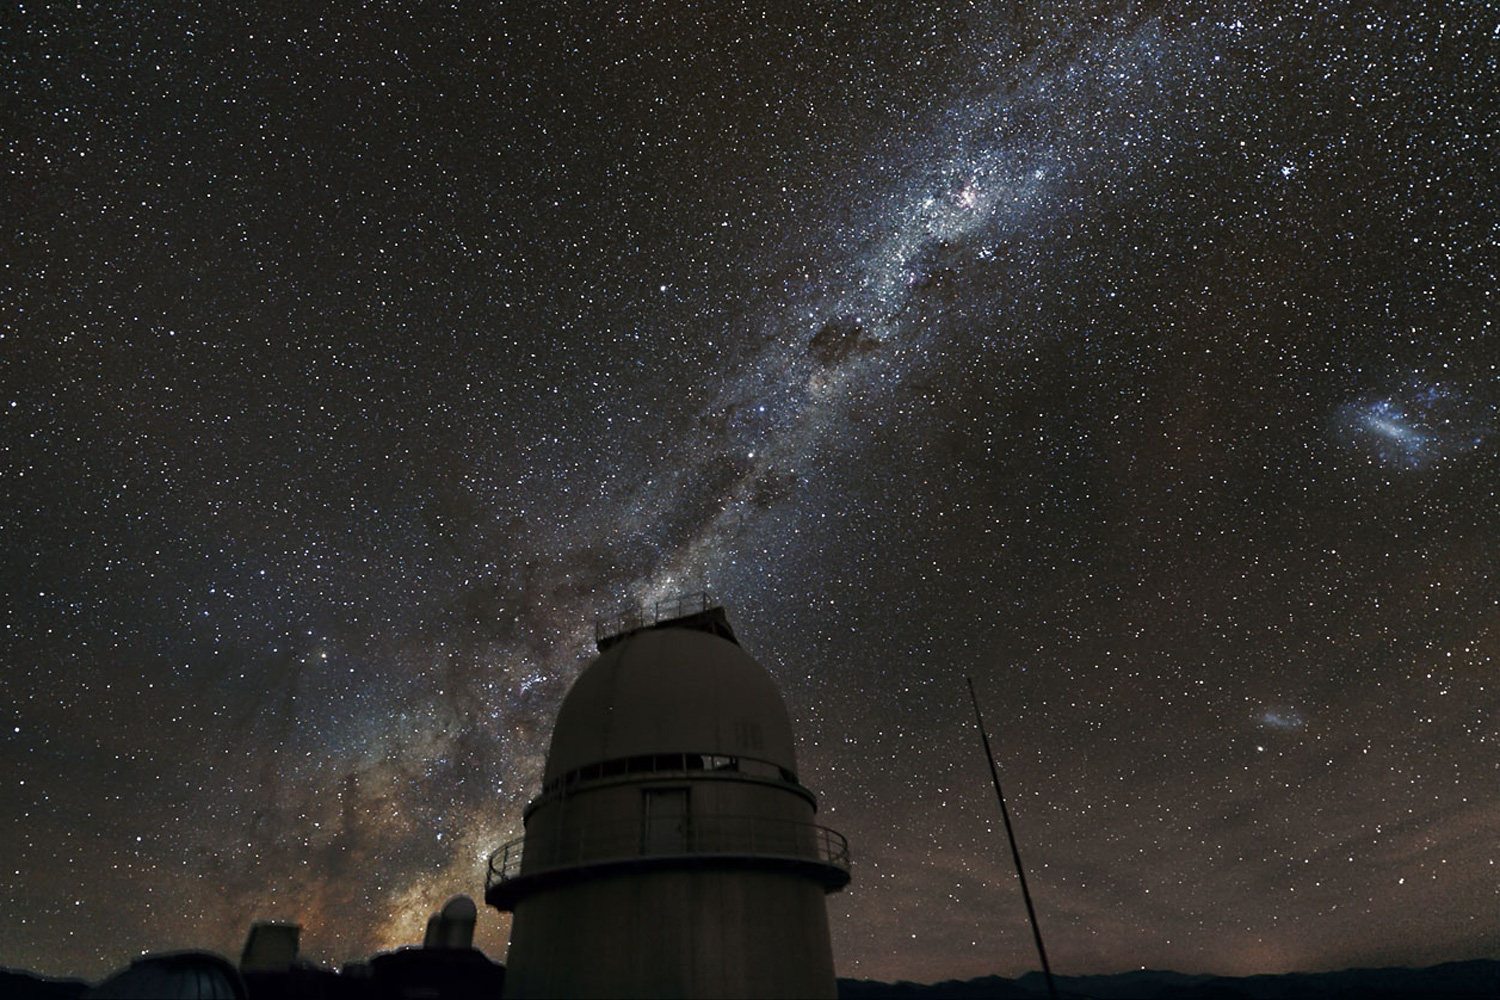 January 11, 2012. The Milky Way illuminates the sky above the dome of the Danish 1.54-metre telescope at ESO's La Silla Observatory in Chile.